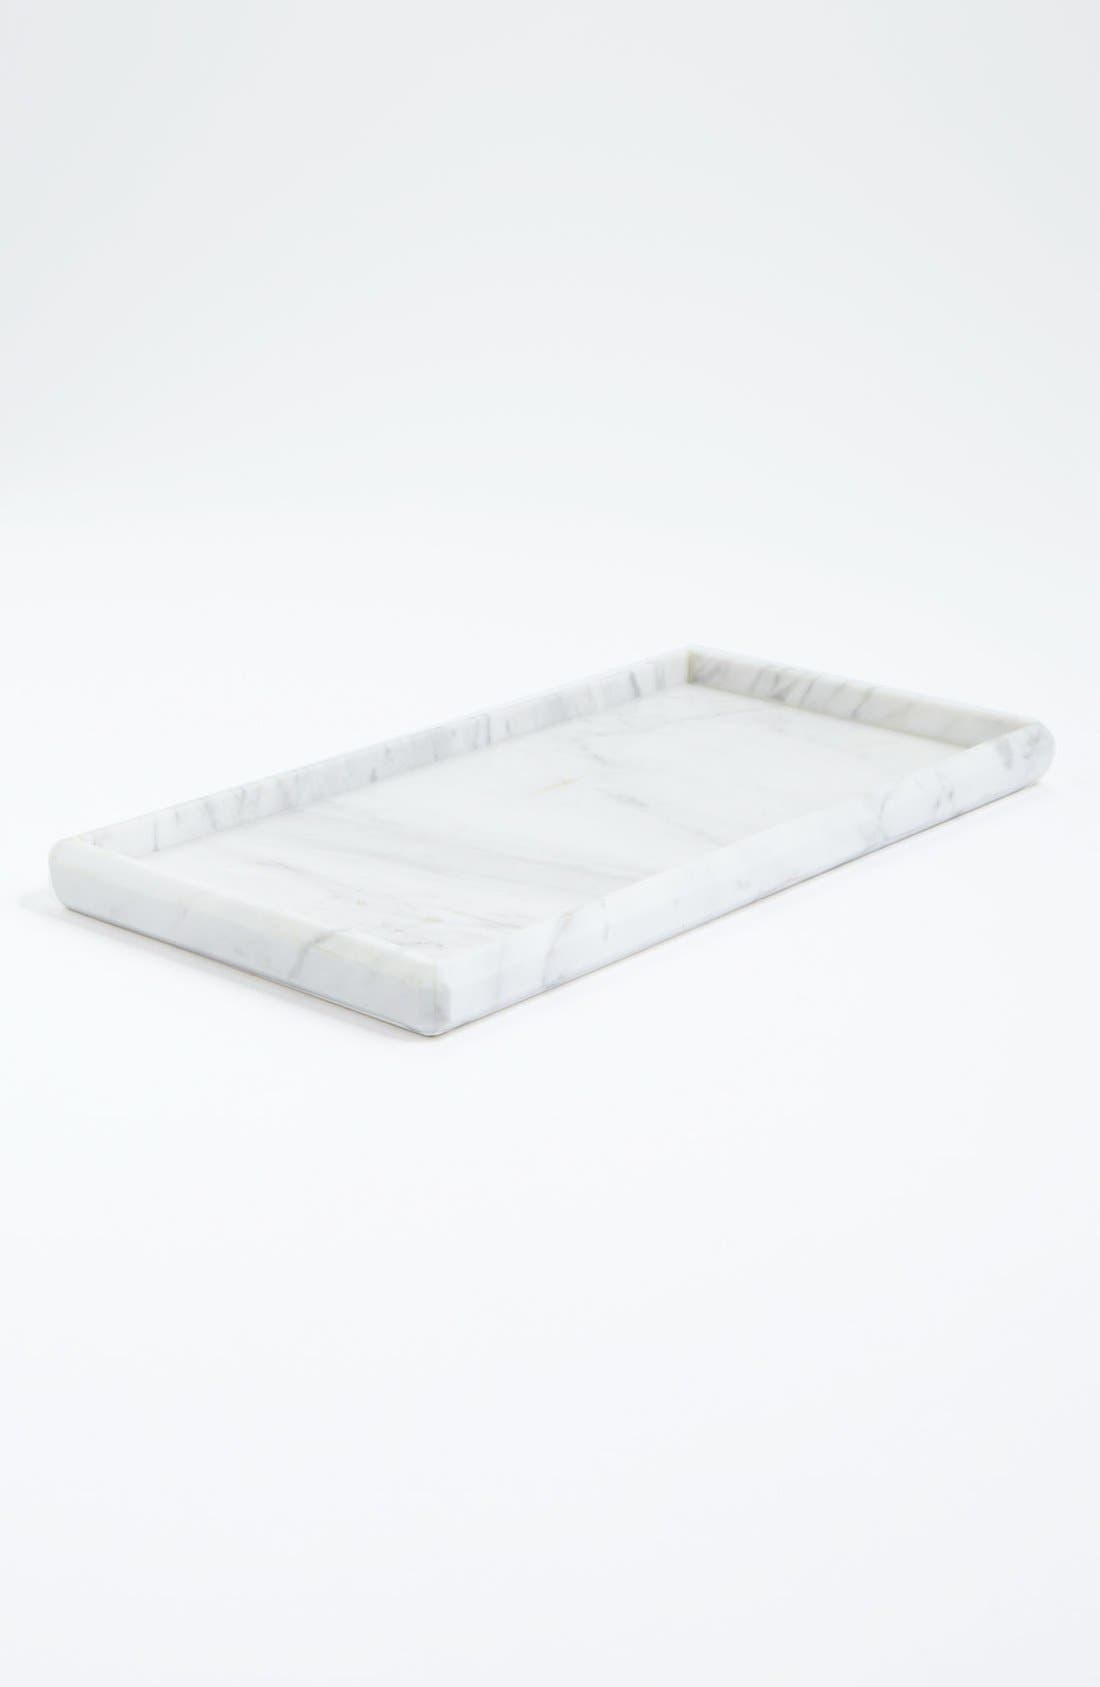 Main Image - Waterworks Studio Luna White Marble Tray (Online Only)